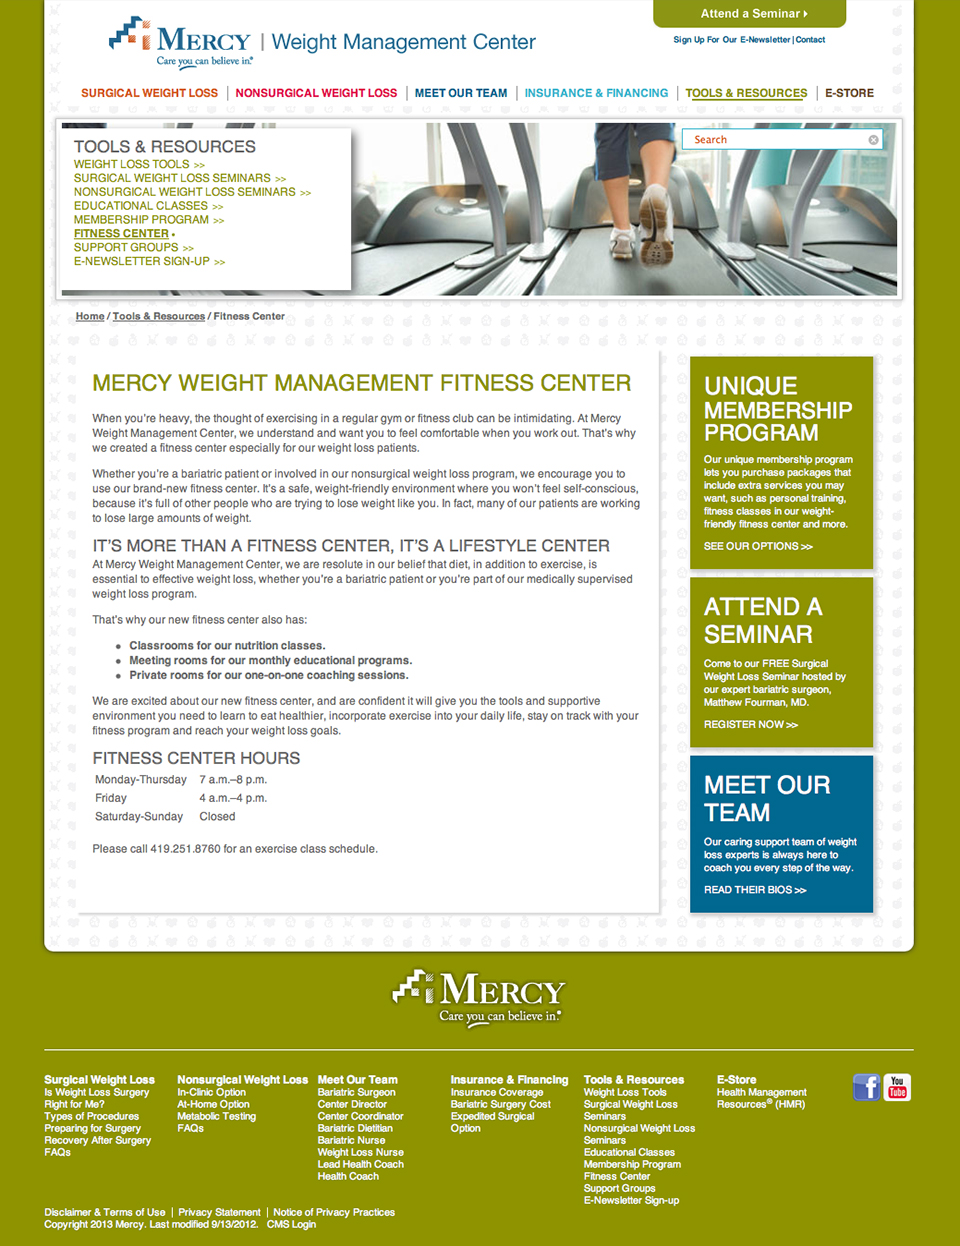 Mercy Weight Management Website | Tools & Resources